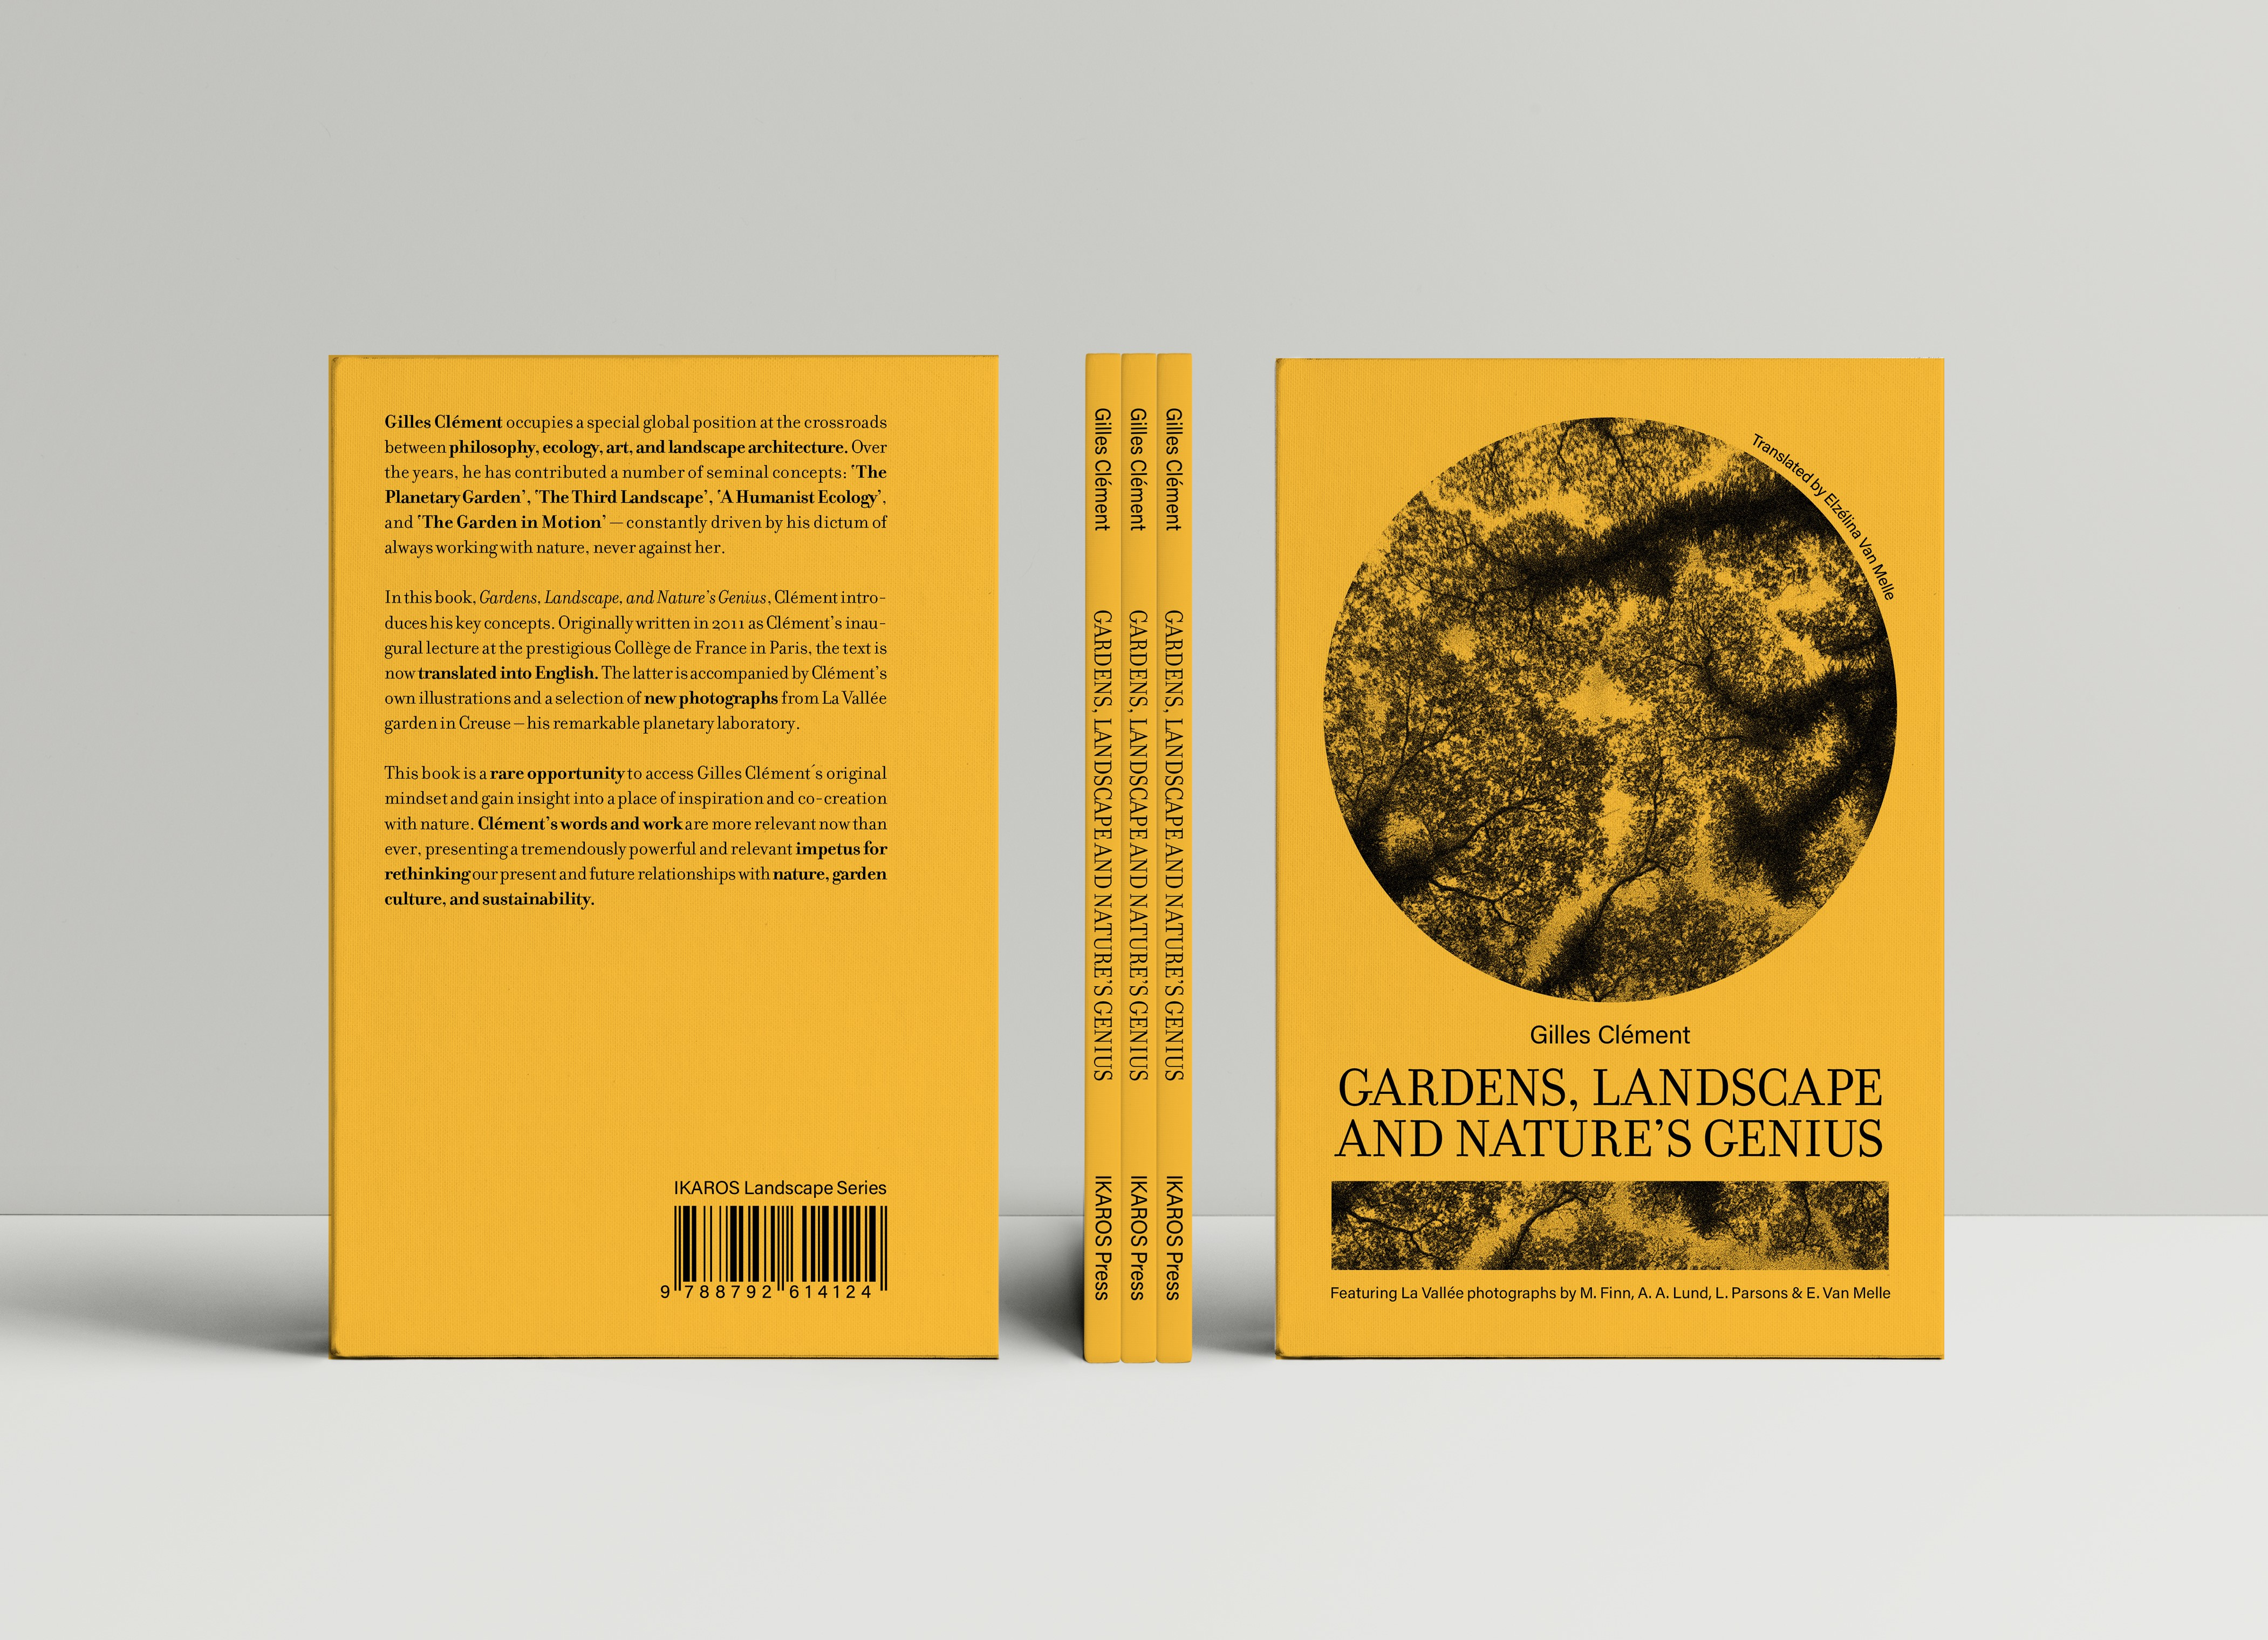 """""""Gardens, Landscape, and Nature's Genius"""" by Gilles Clément now available in English!"""